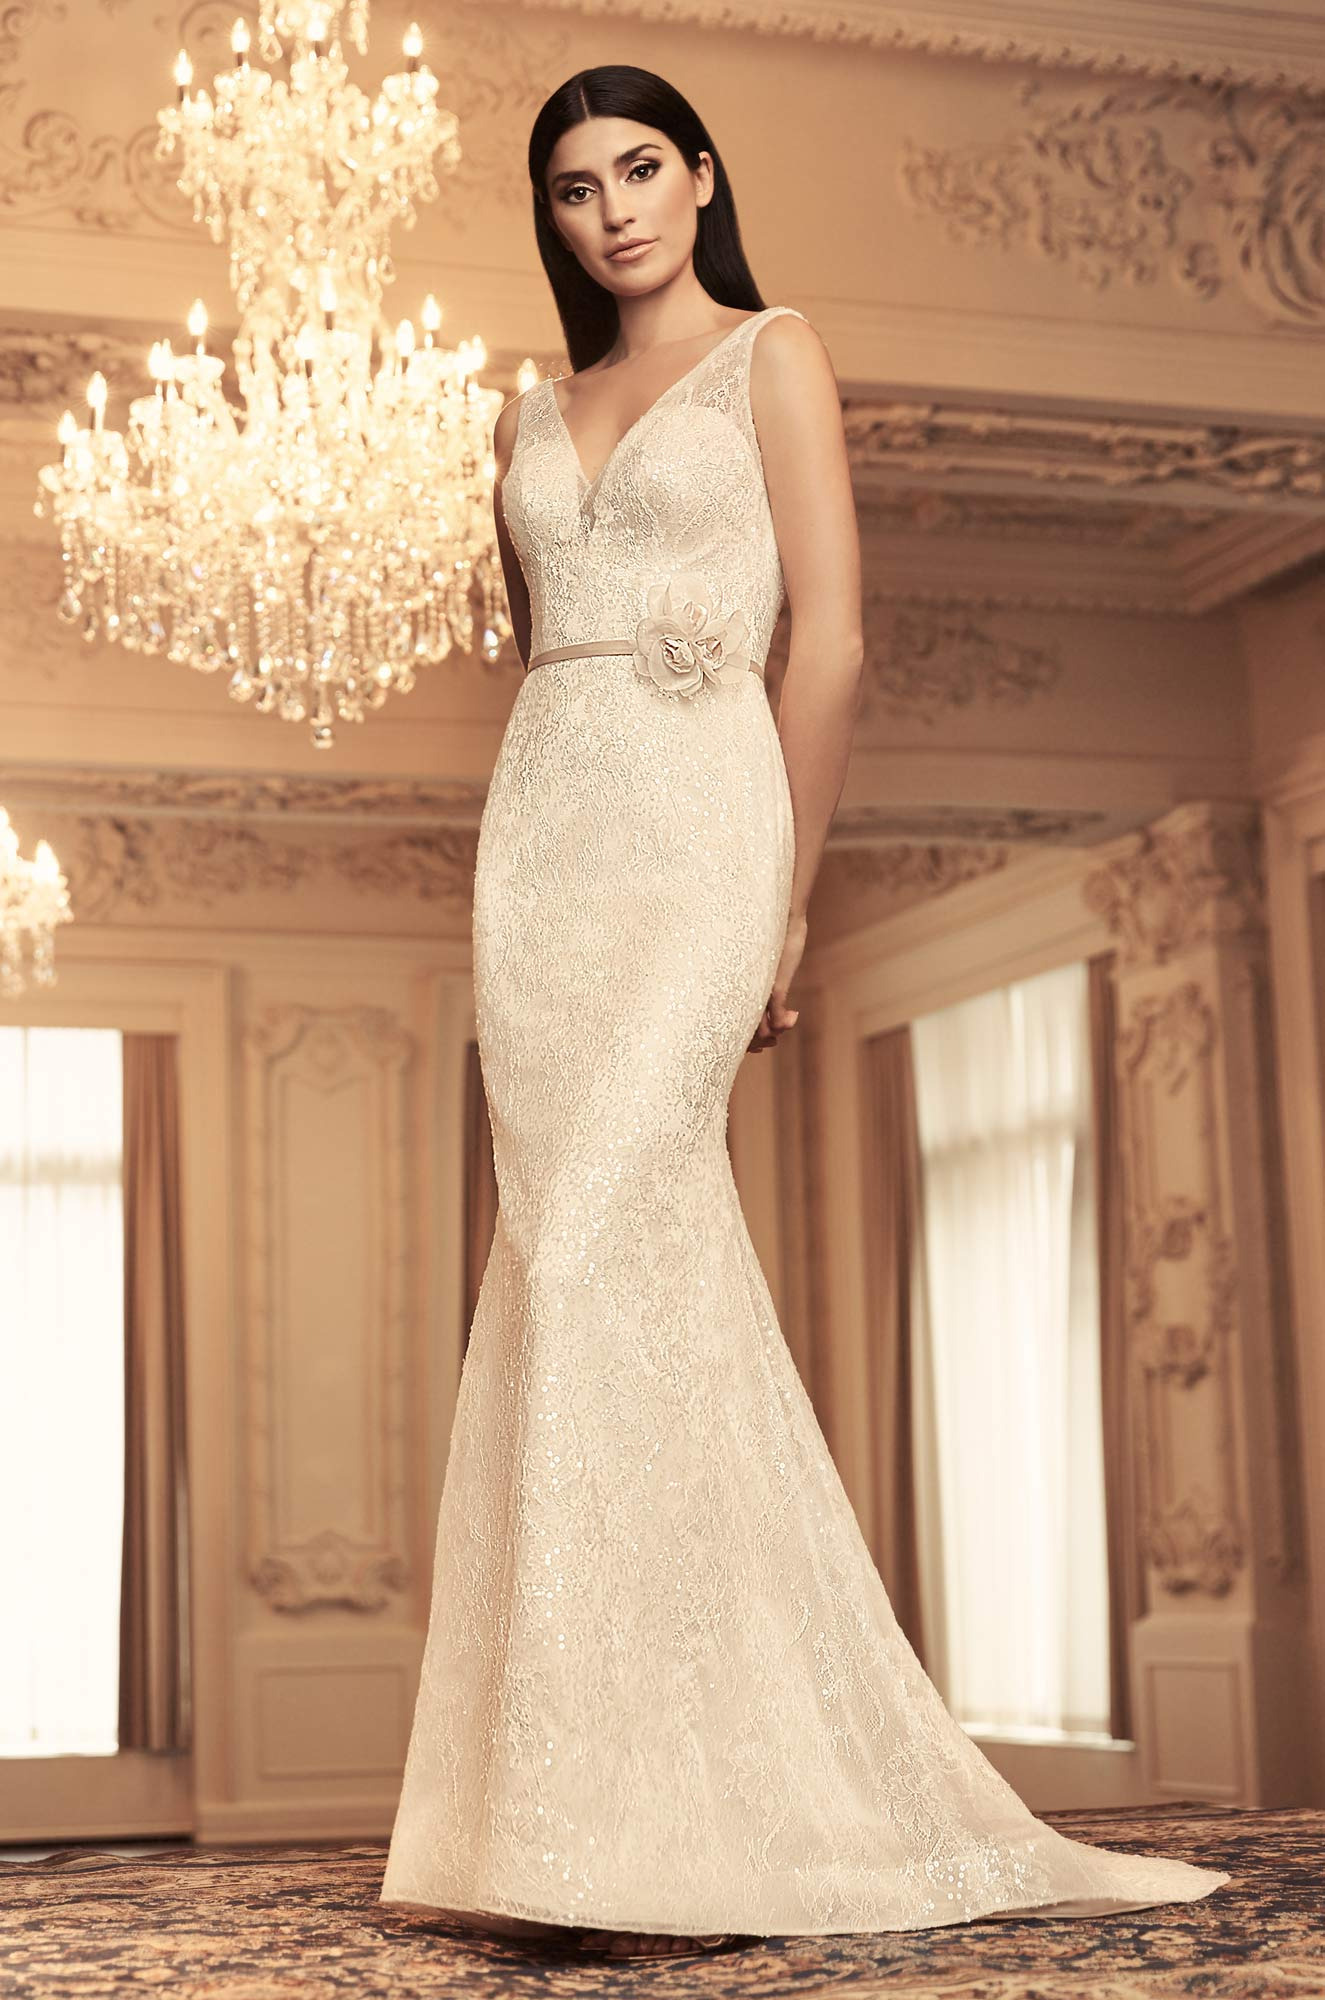 Sleeveless Vneck Sequin Lace Fit And Flare Wedding Dress Kleinfeld Bridal: Wedding Dress With Long Hair At Reisefeber.org